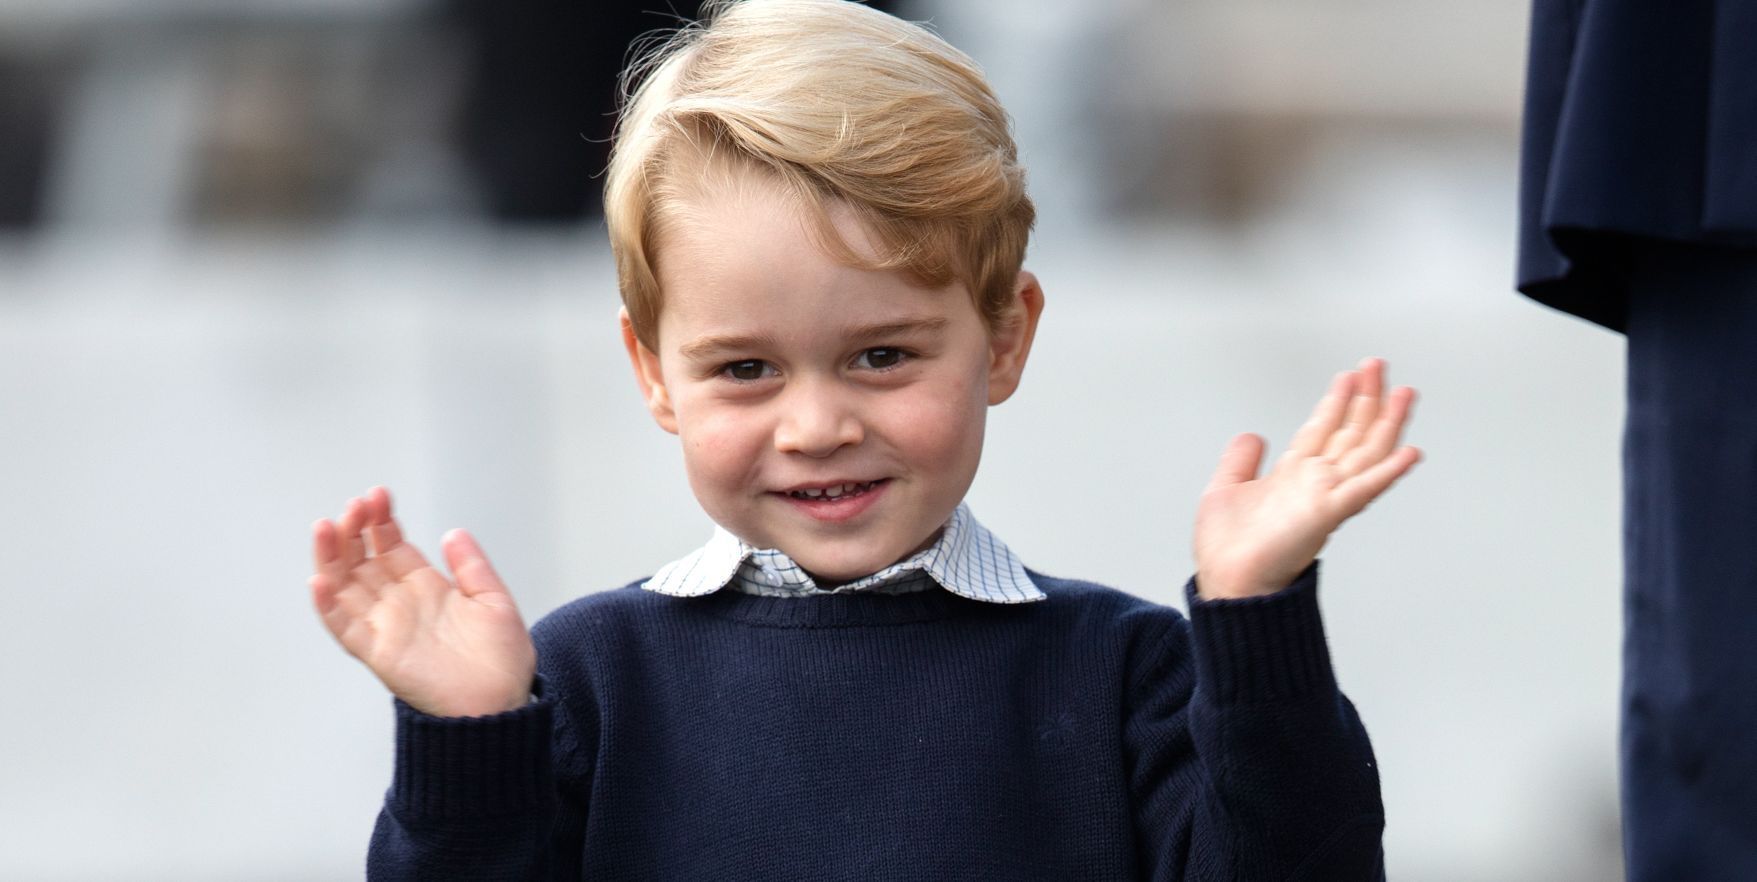 Prince George's Classmates Have the Absolute Cutest Nickname for Him